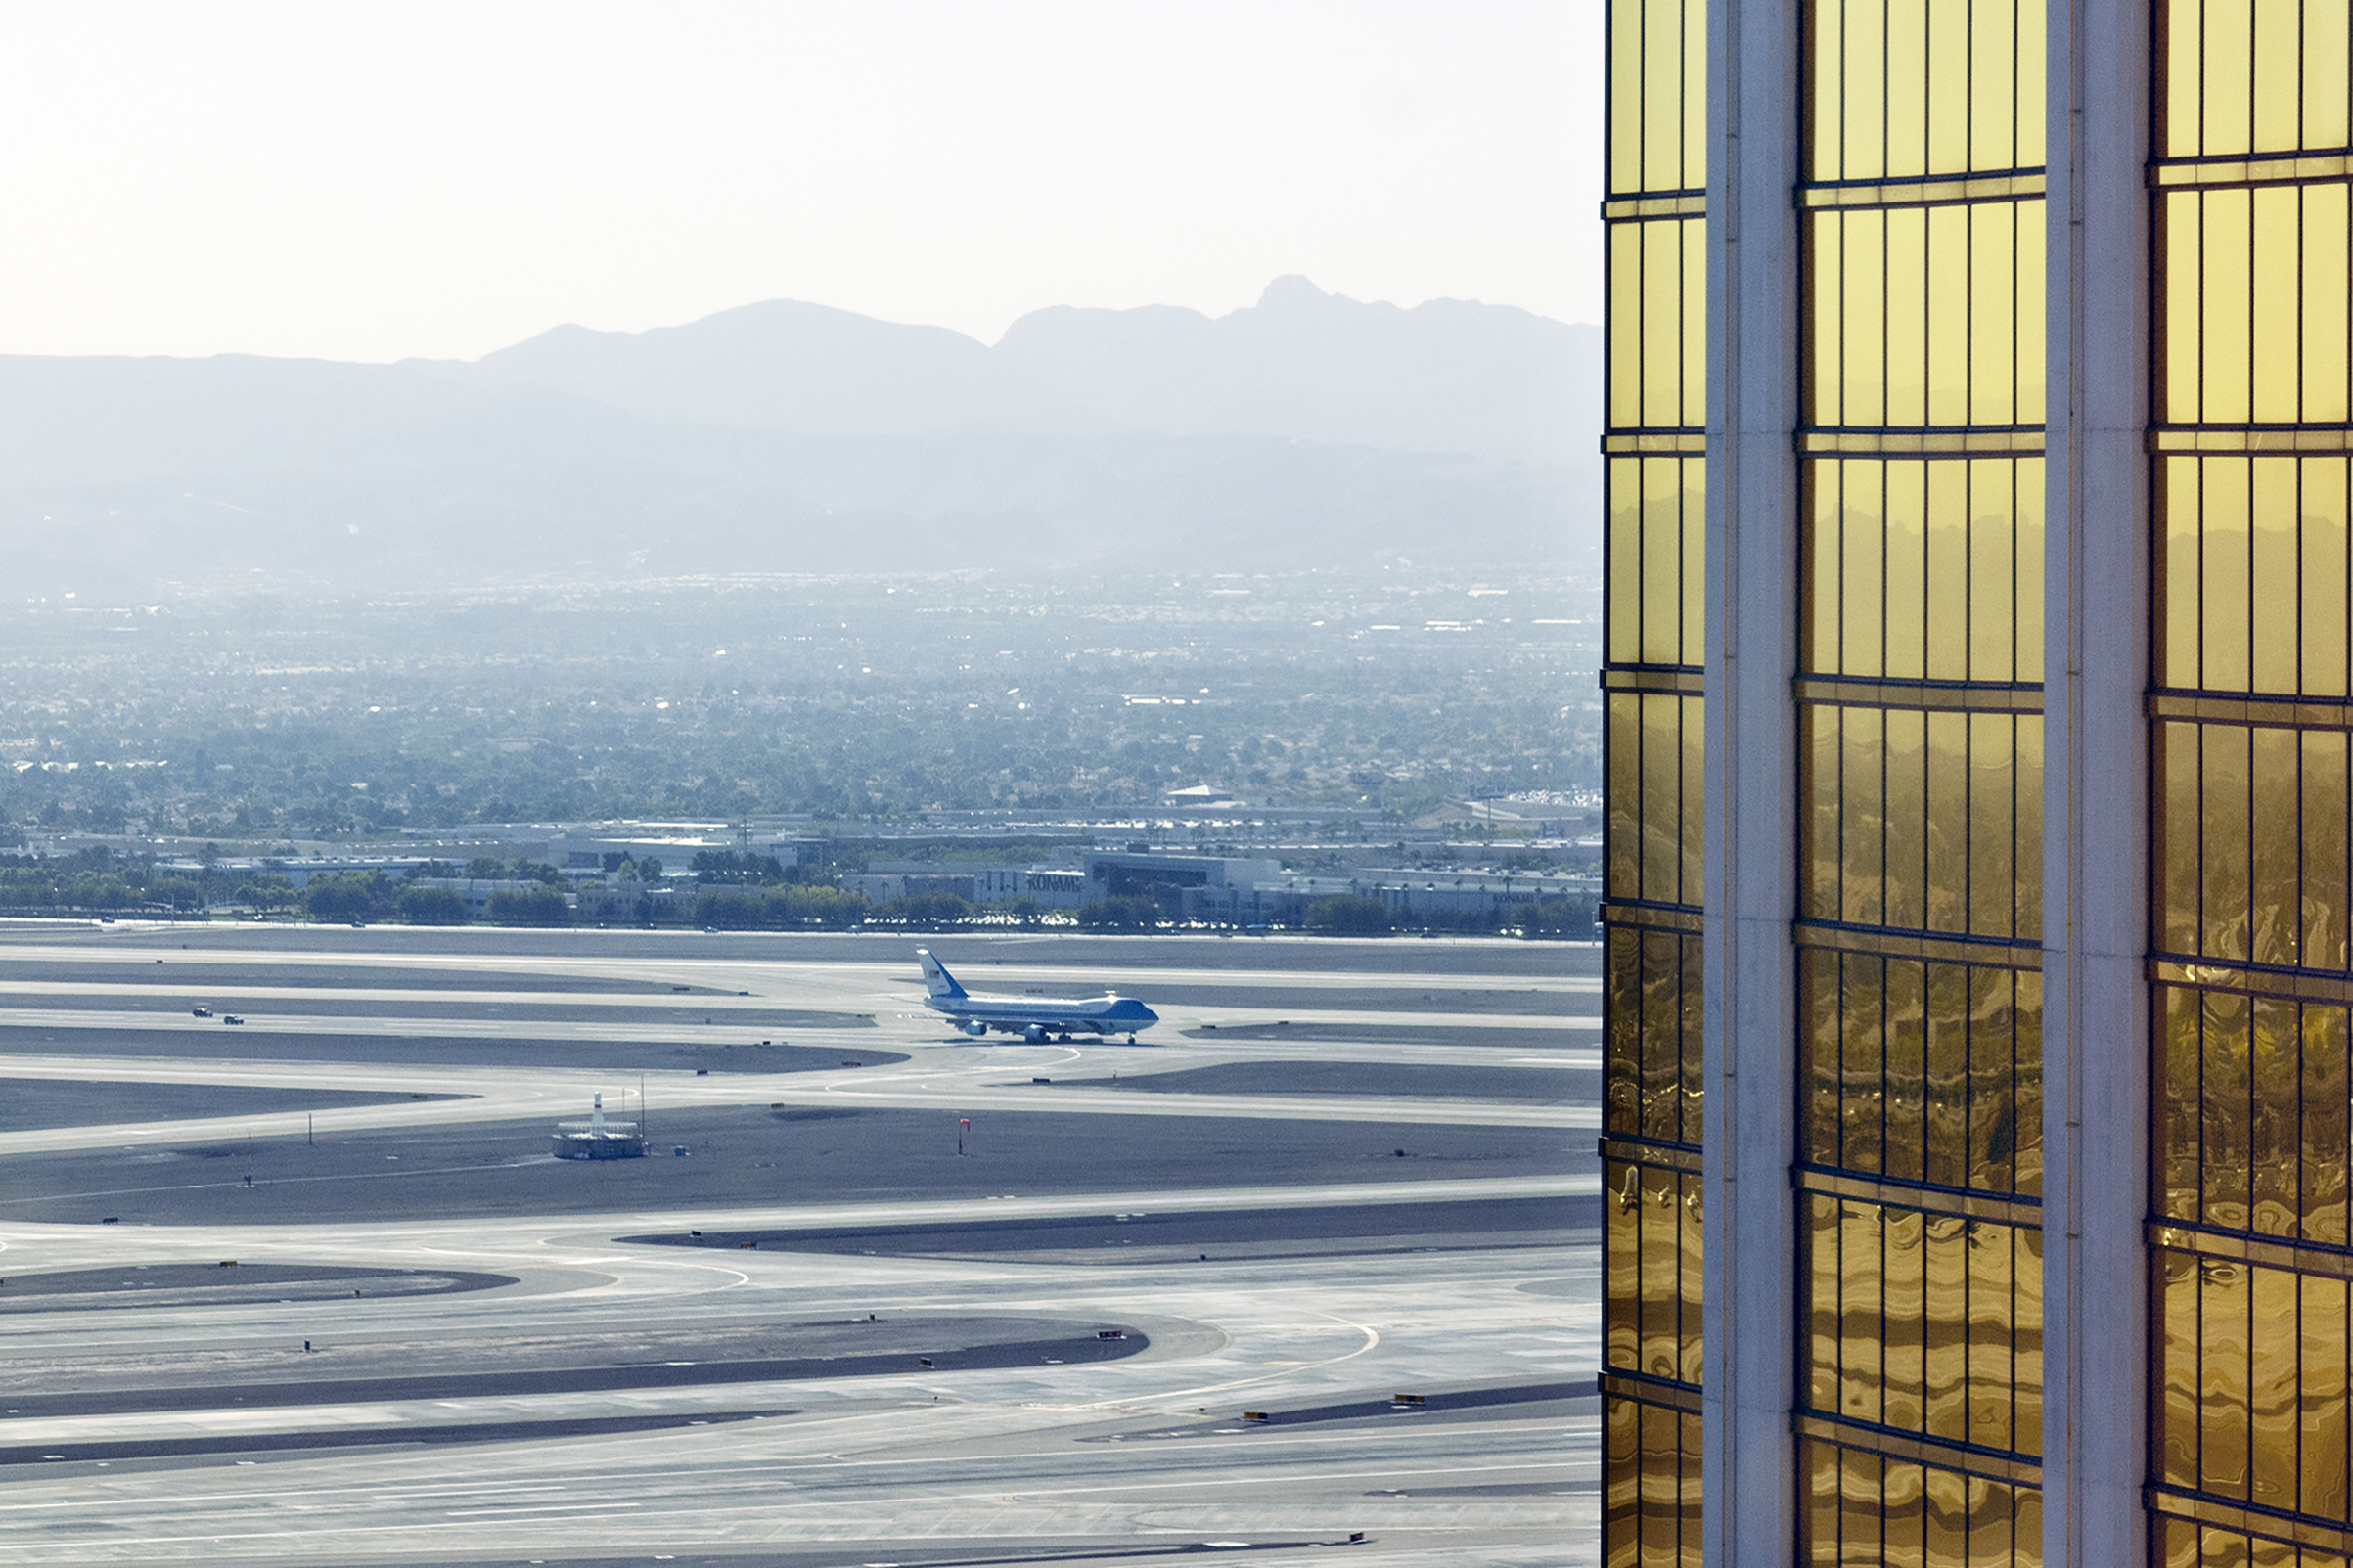 President Trump arrives on Air Force One at McCarran International Airport, Las Vegas. Oct. 4, 2017. The Mandalay Bay Resort and Casino is seen on the right.